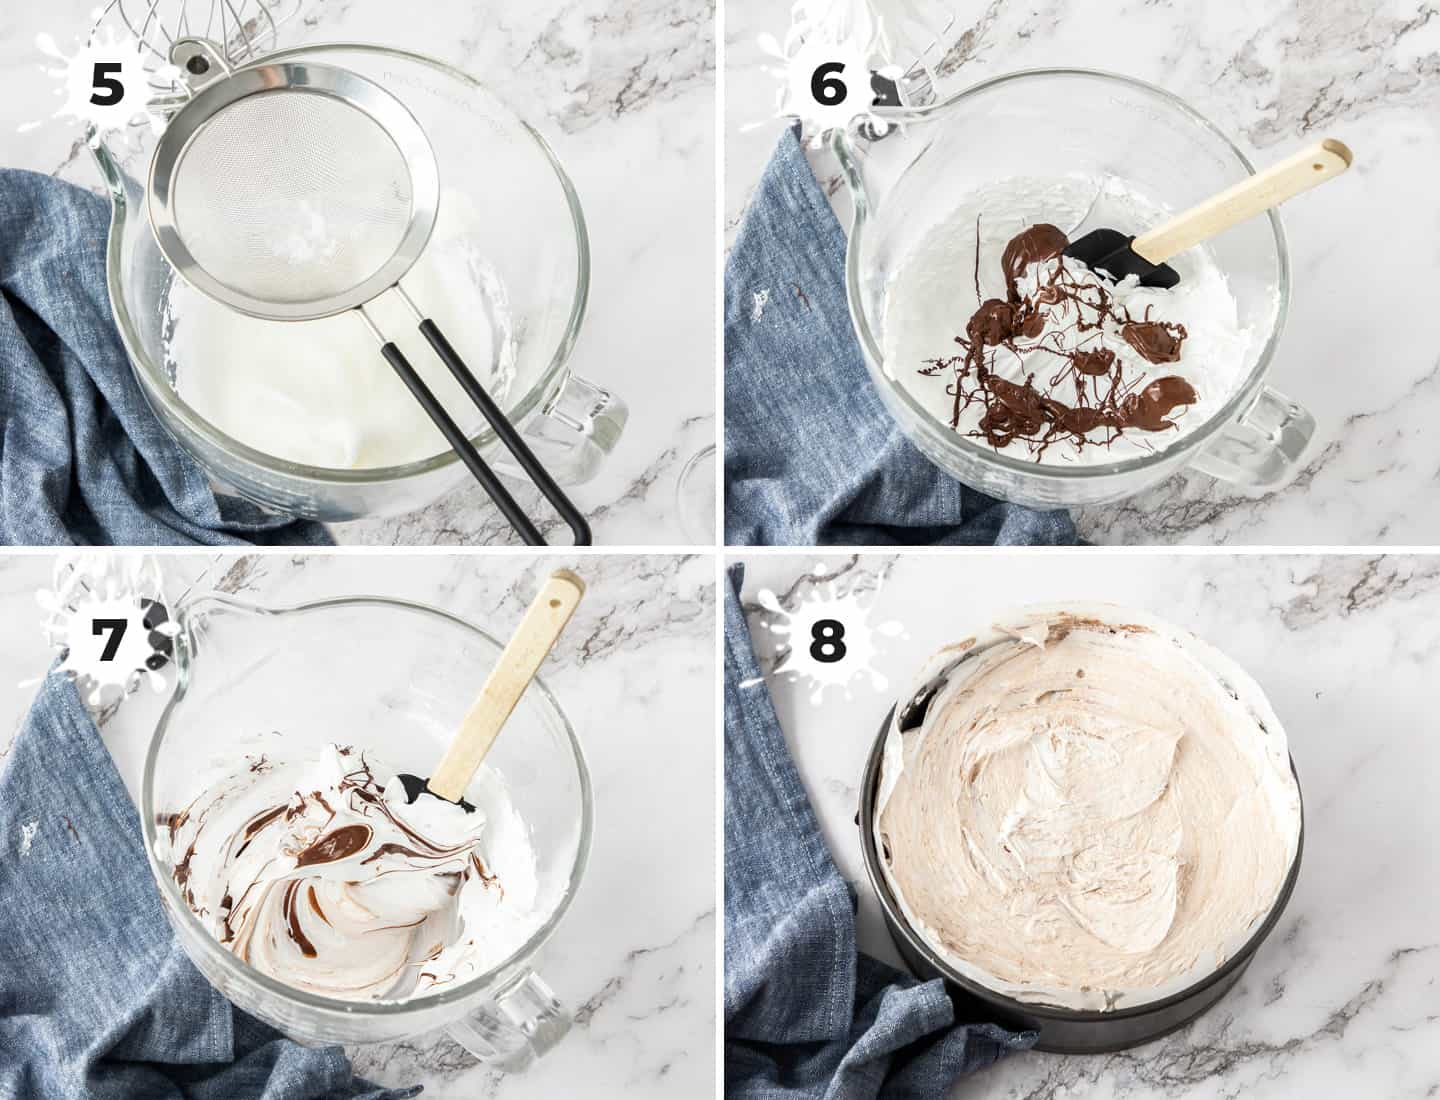 A collage of 4 images showing the making of chocolate swirled meringue.